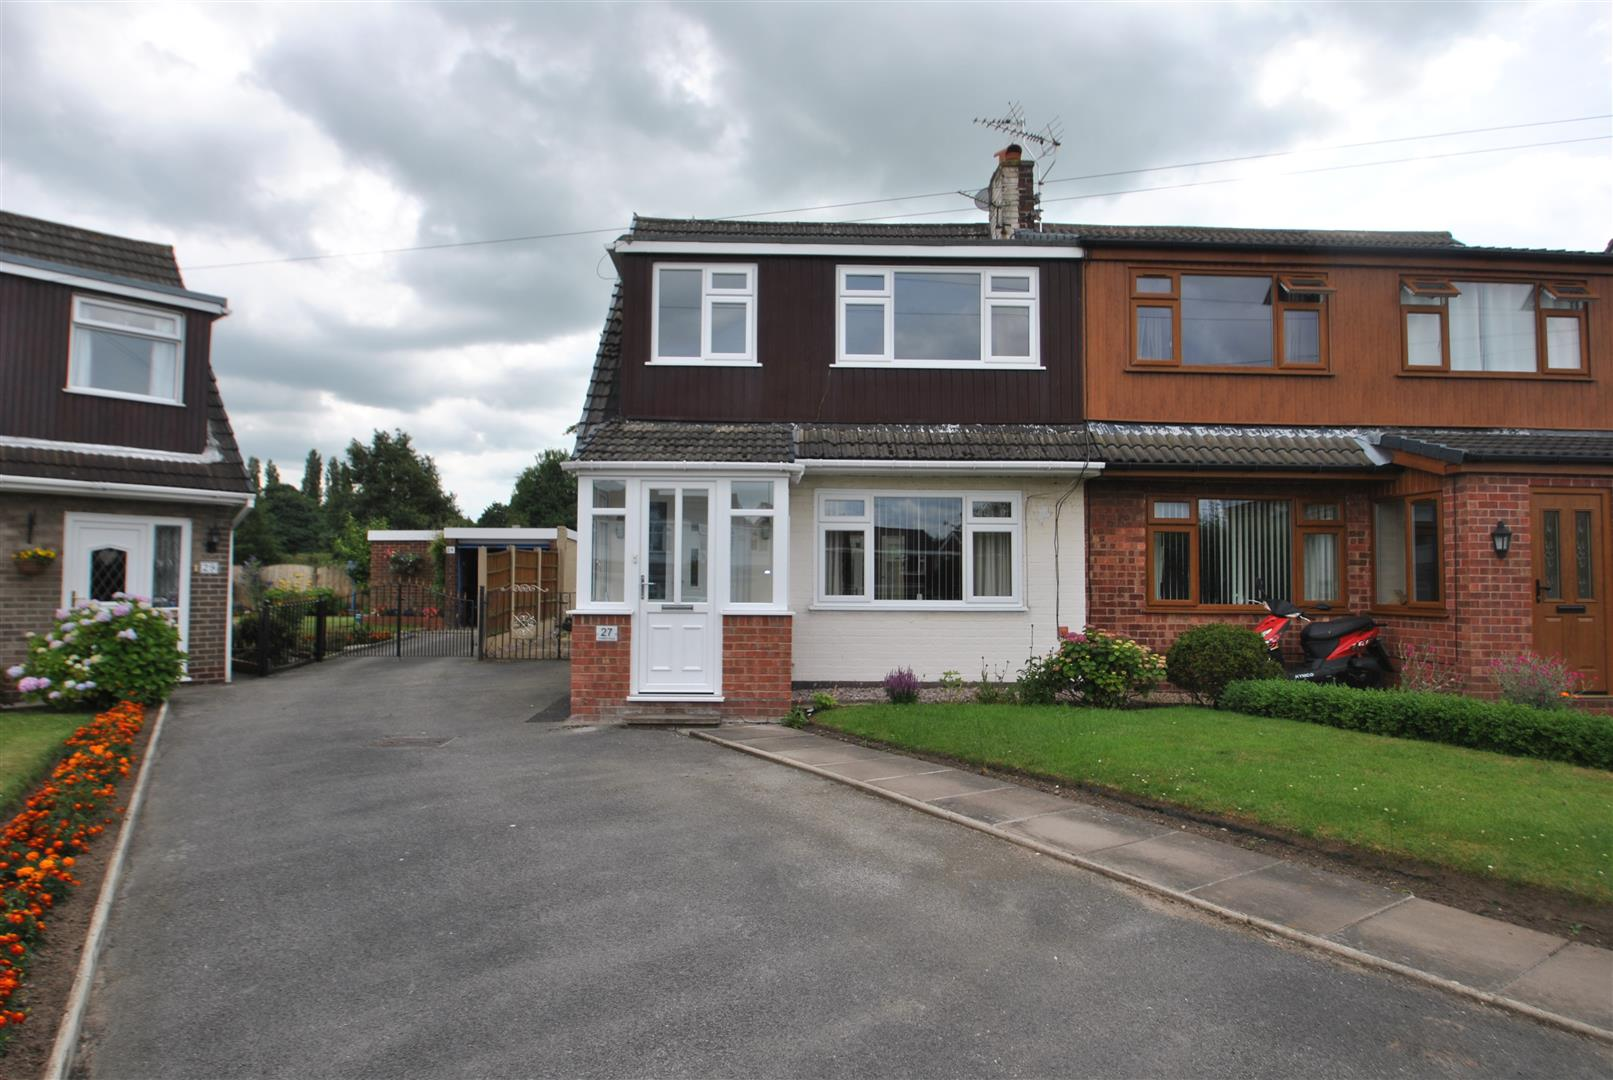 3 Bedrooms Property for sale in Lindfield Close, MOORE, Warrington, WA4